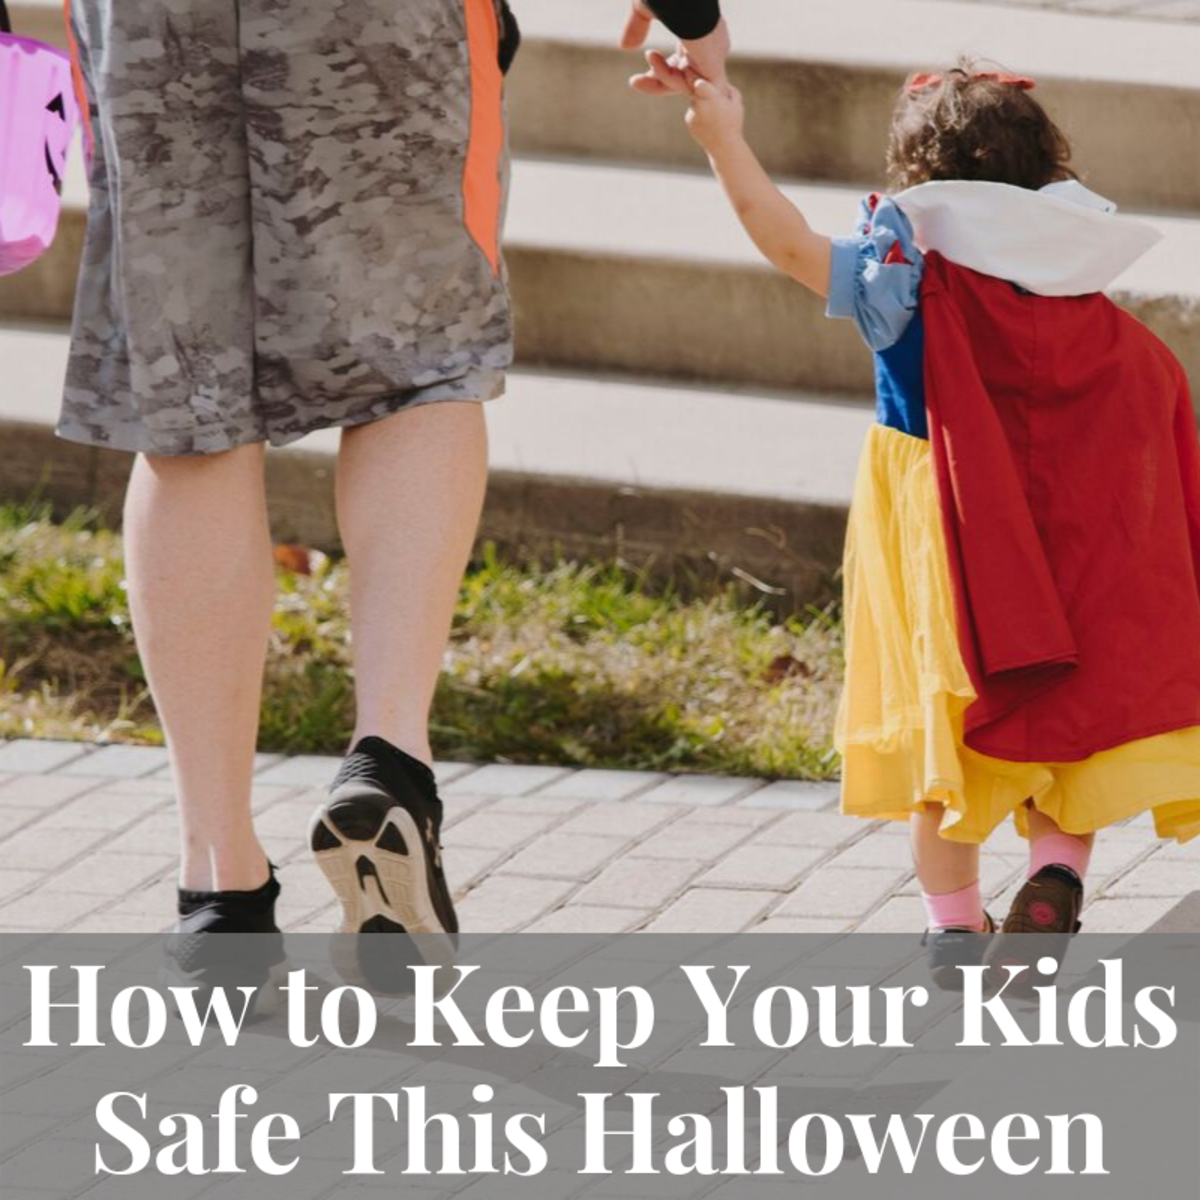 Come Halloween, it's important for parents to keep a few important safety tips in mind.